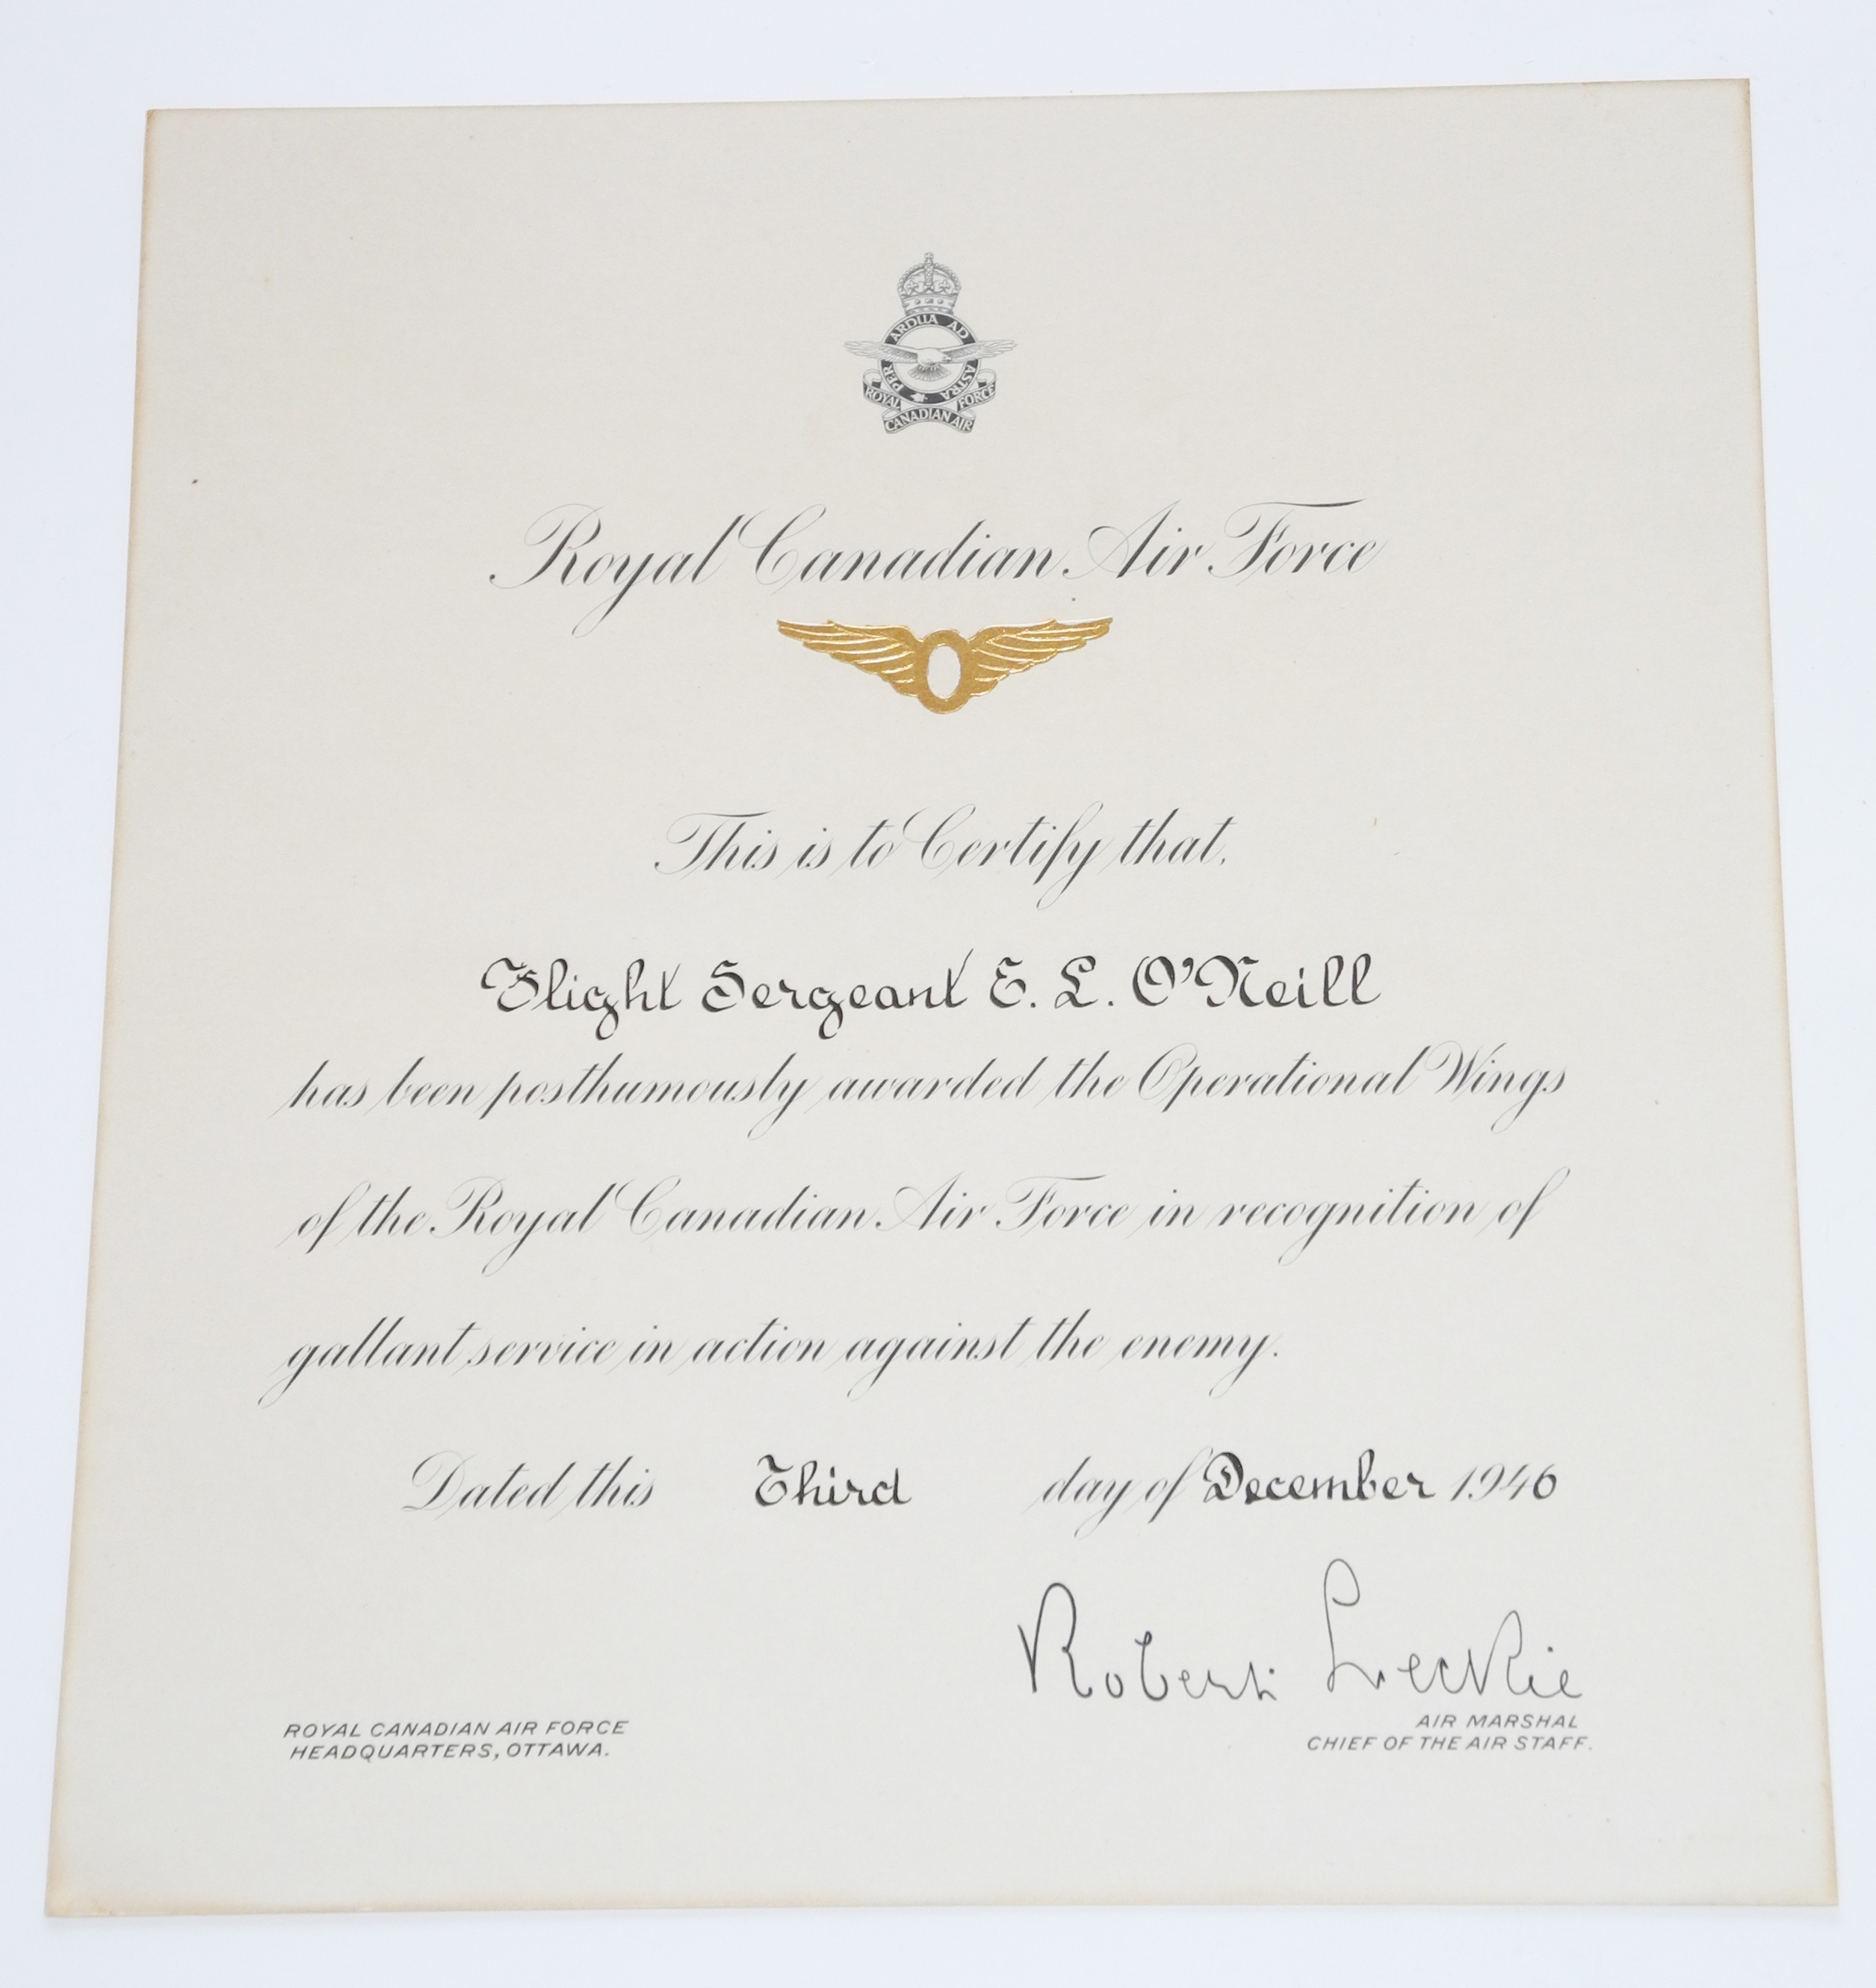 RCAF ops wing, certificate and let